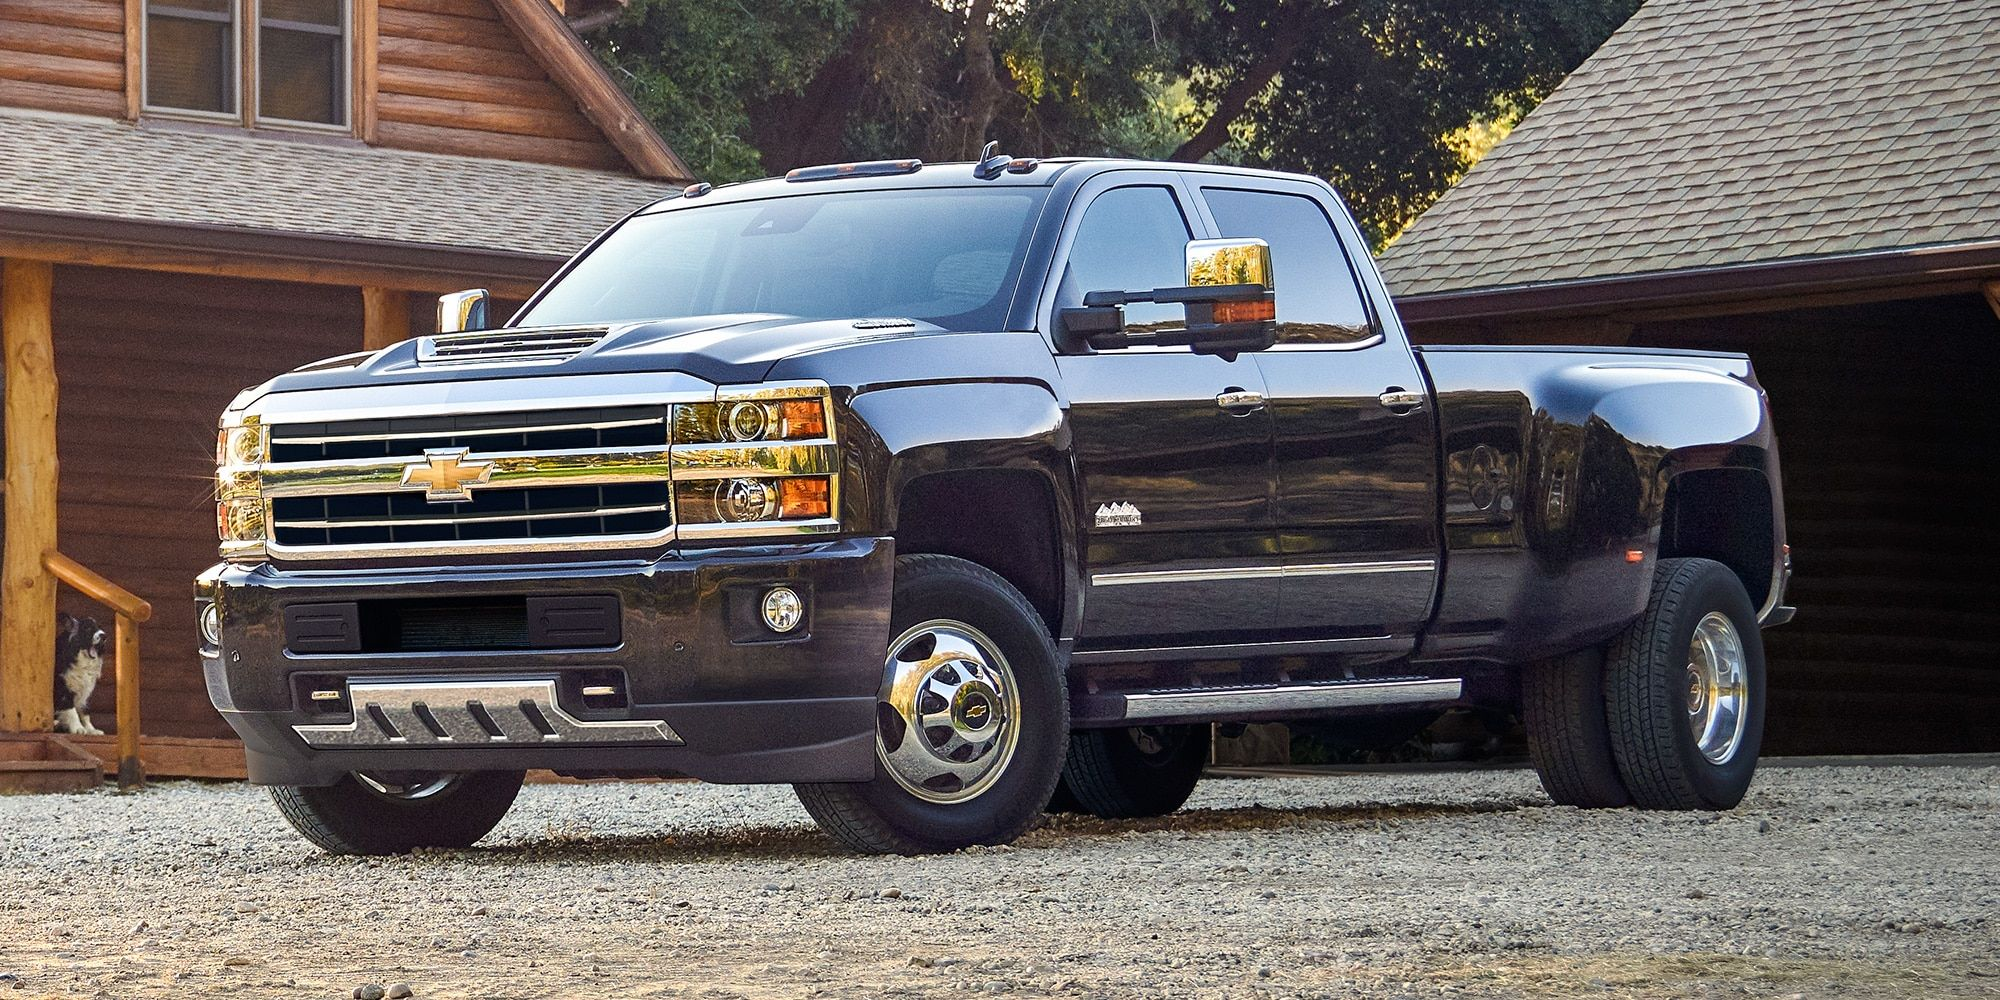 Pin On 2019 Chevy Silverado Hd Trucks